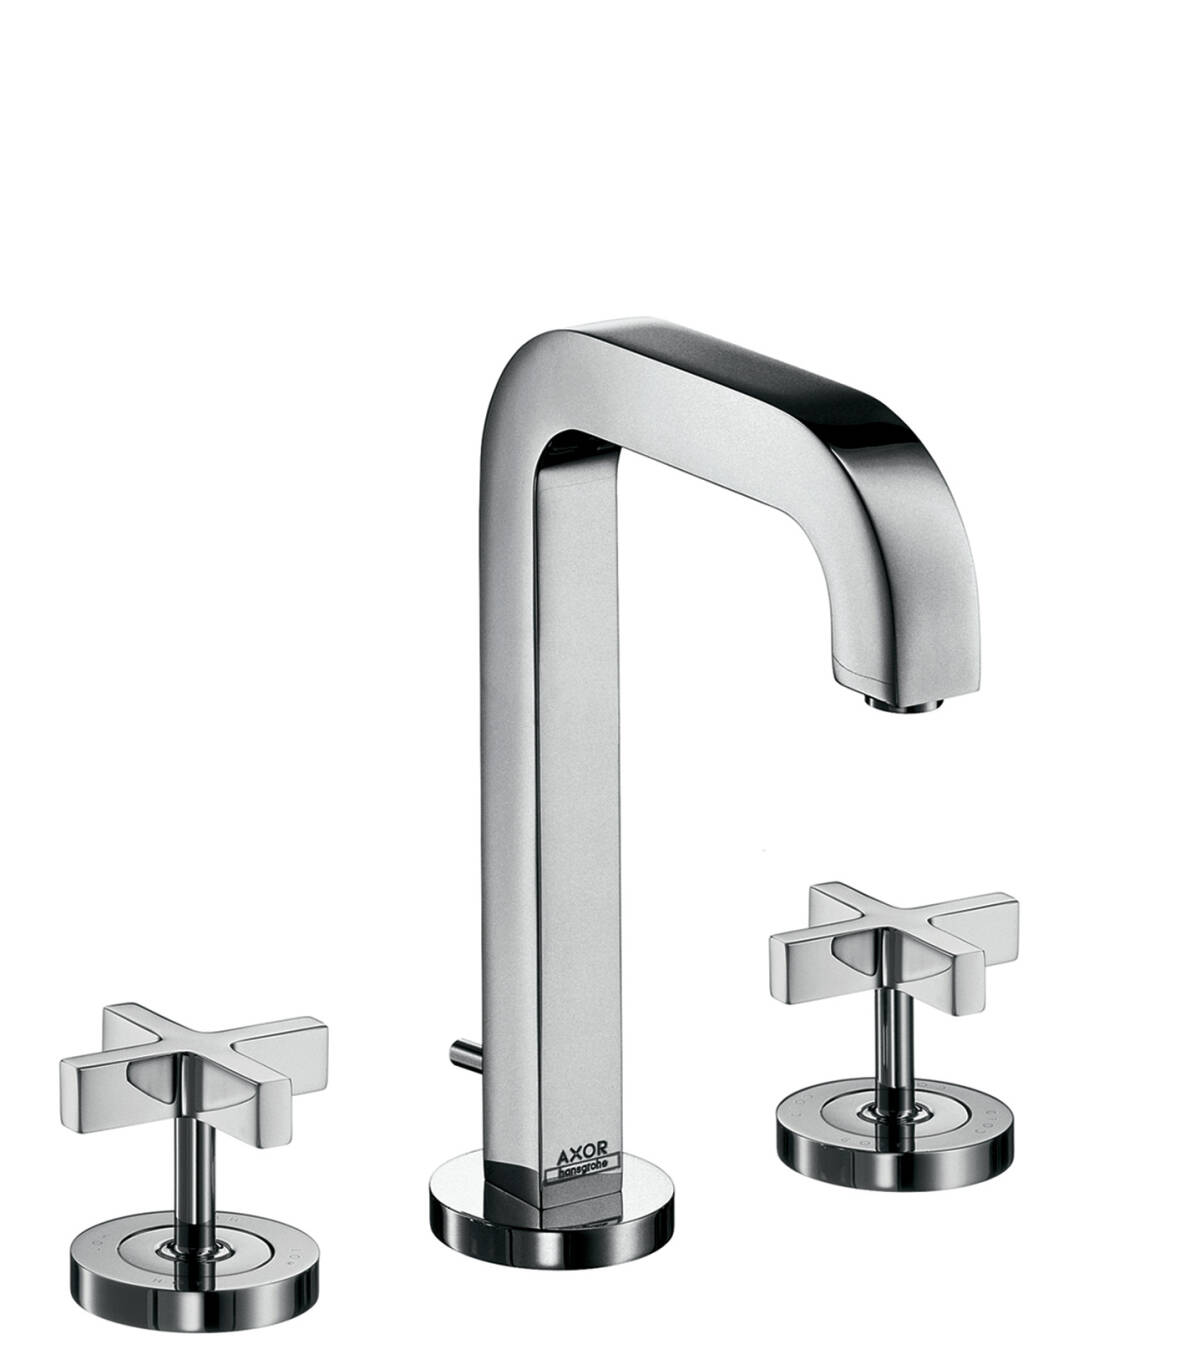 3-hole basin mixer 170 with spout 140 mm, cross handles, escutcheons and pop-up waste set, Polished Nickel, 39133830